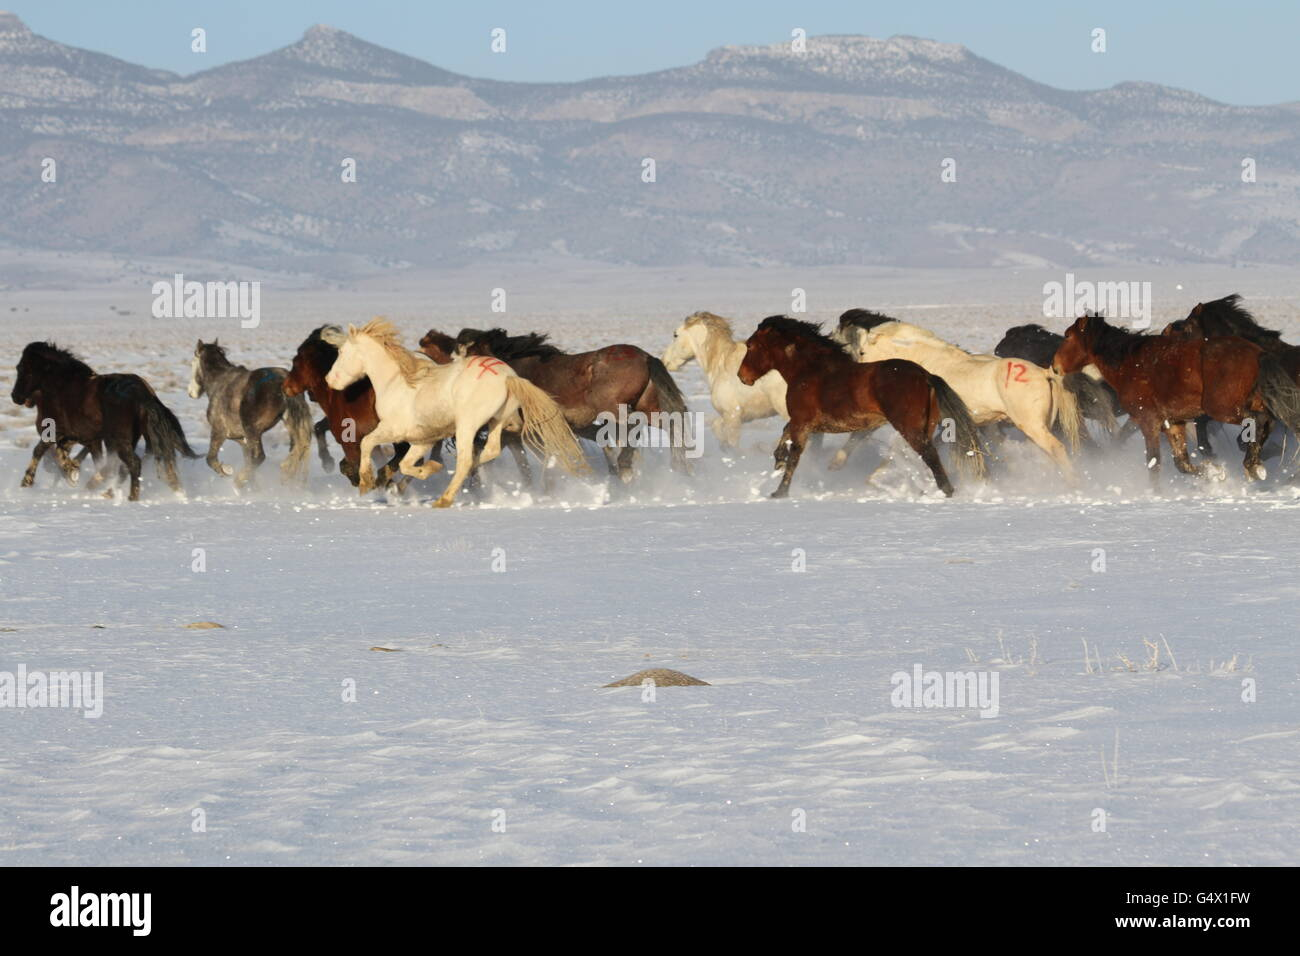 Wild Horses Running In Snow High Resolution Stock Photography And Images Alamy